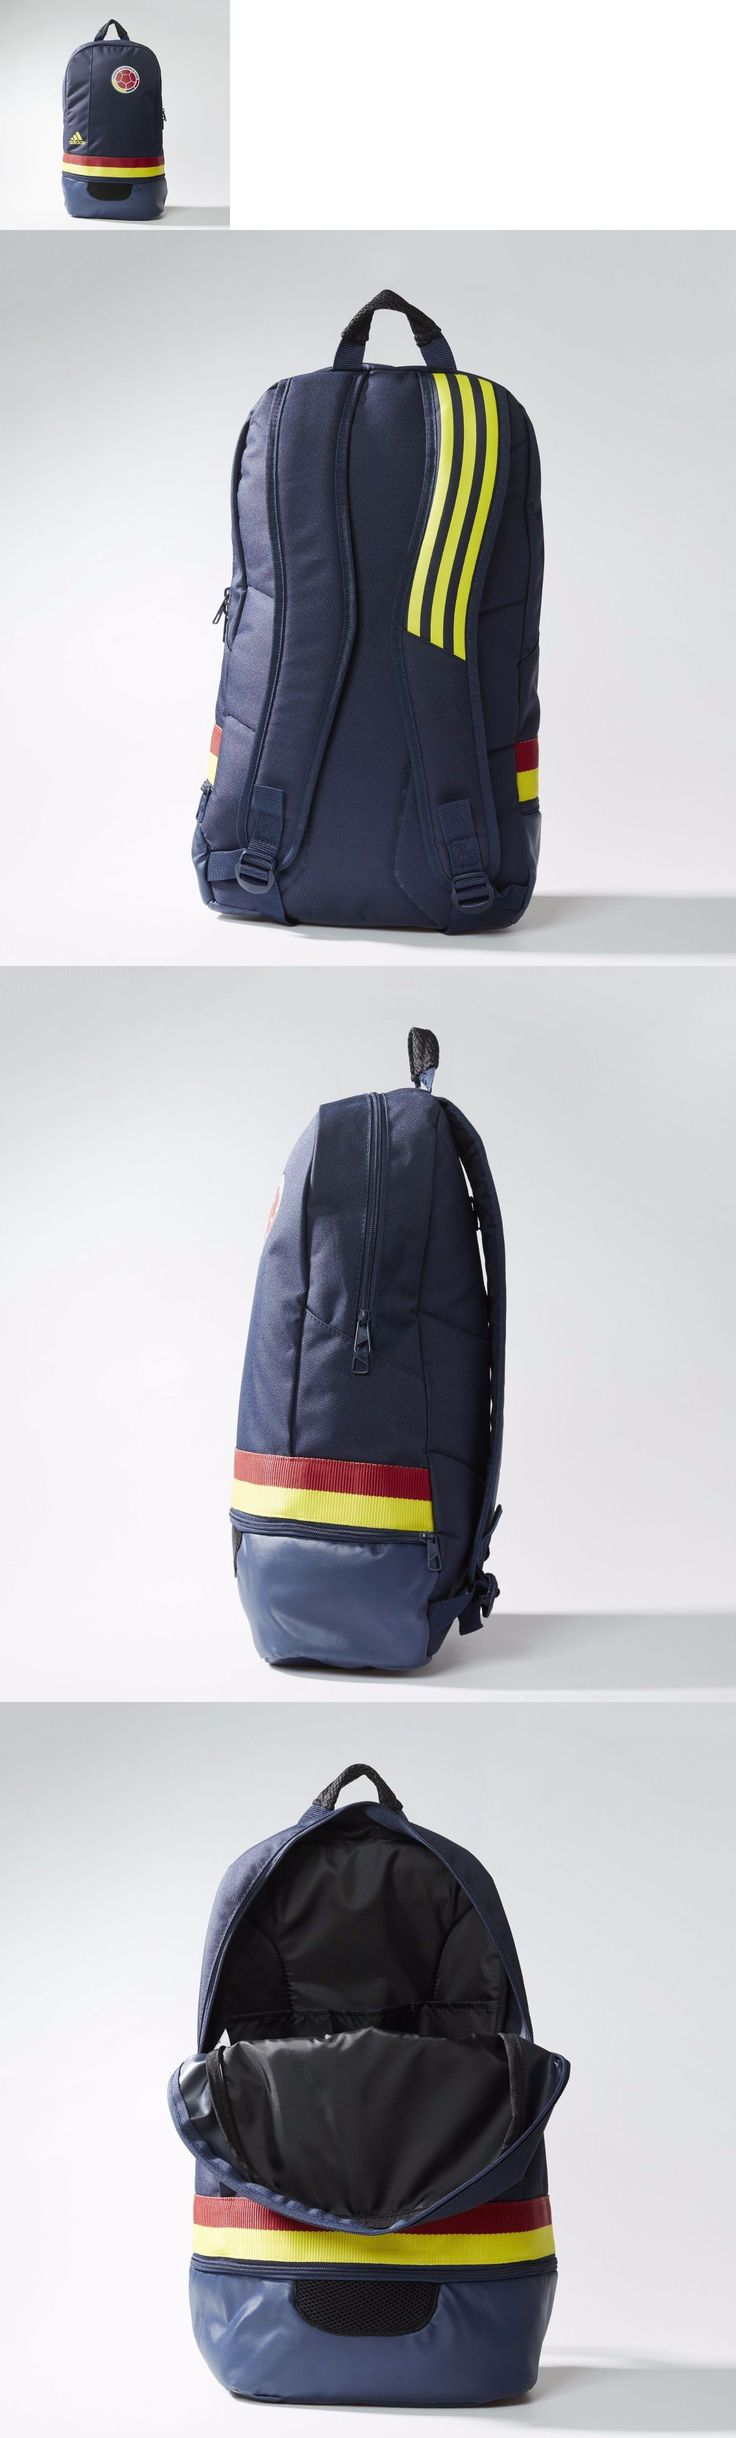 Other Soccer Clothing and Accs 159179: Colombia Adidas Original Bag Morral Selection Colombia National Team - Aa6405 -> BUY IT NOW ONLY: $70 on eBay!